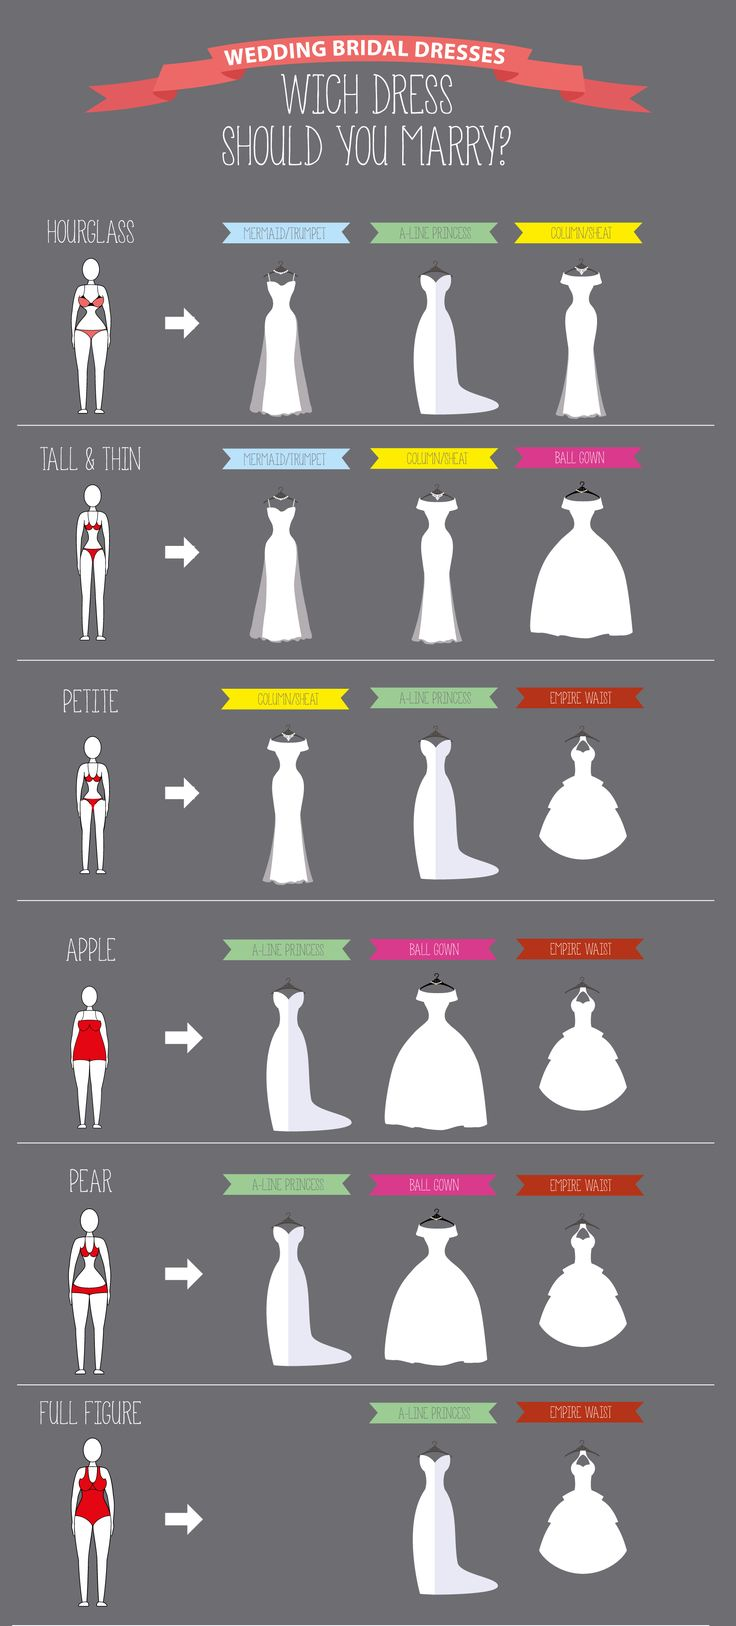 The Ultimate Wedding Dress Lingo Cheat Sheet | Team Wedding Blog